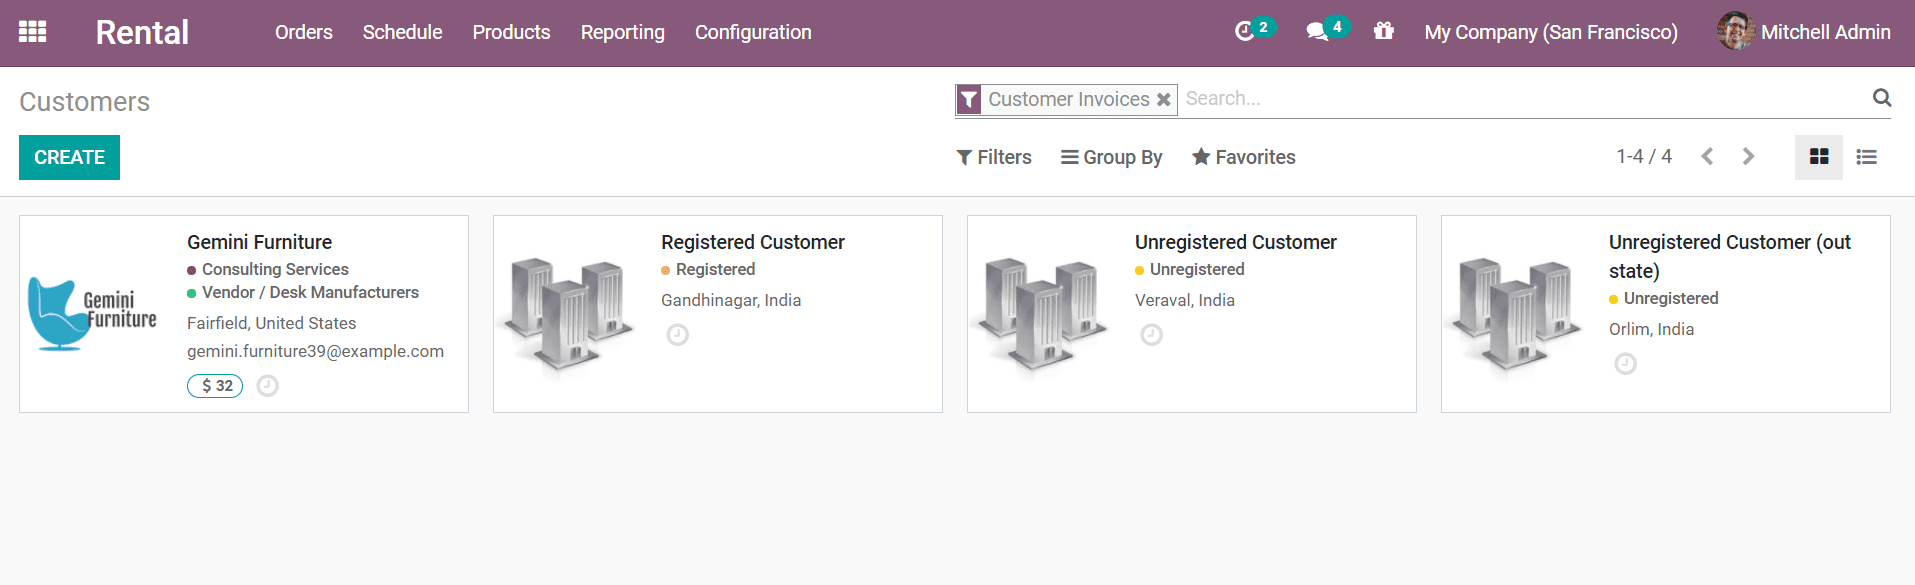 how-to-manage-your-rental-service-with-odoo-14